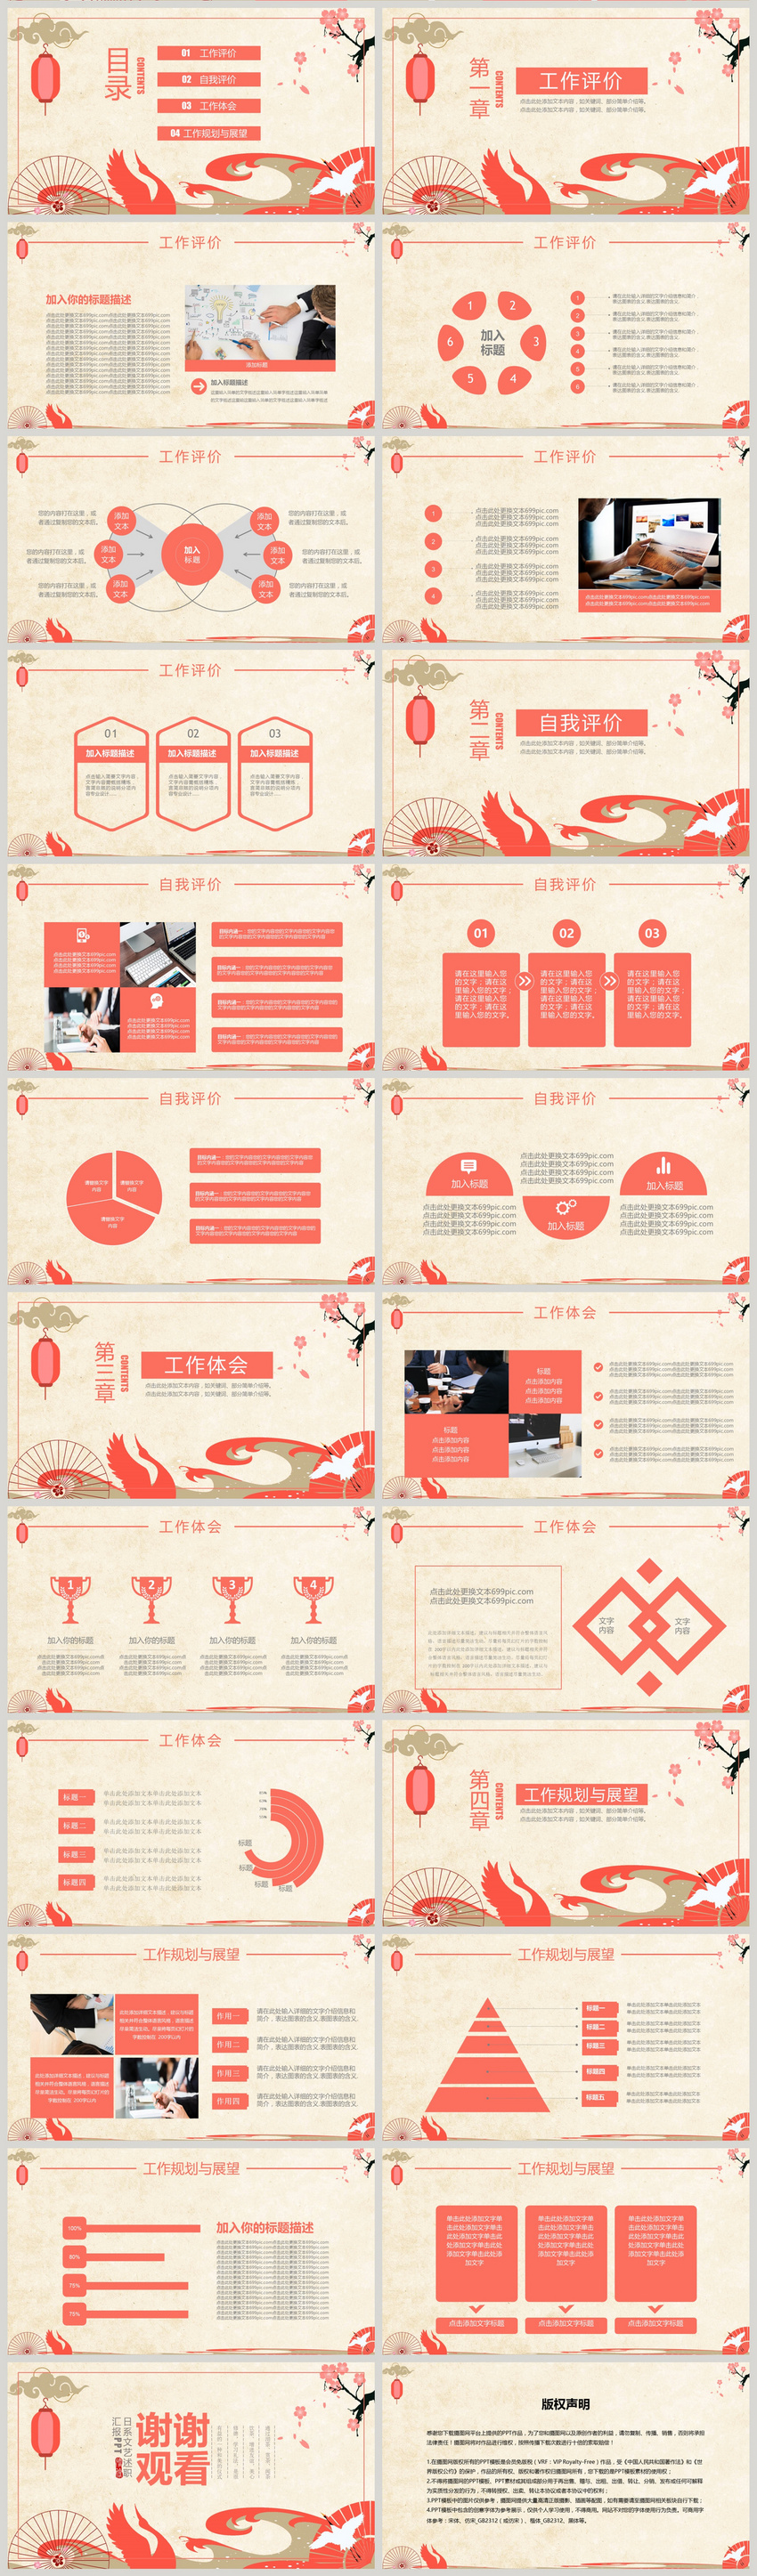 ppt template for simple japanese reporting powerpoint templete ppt